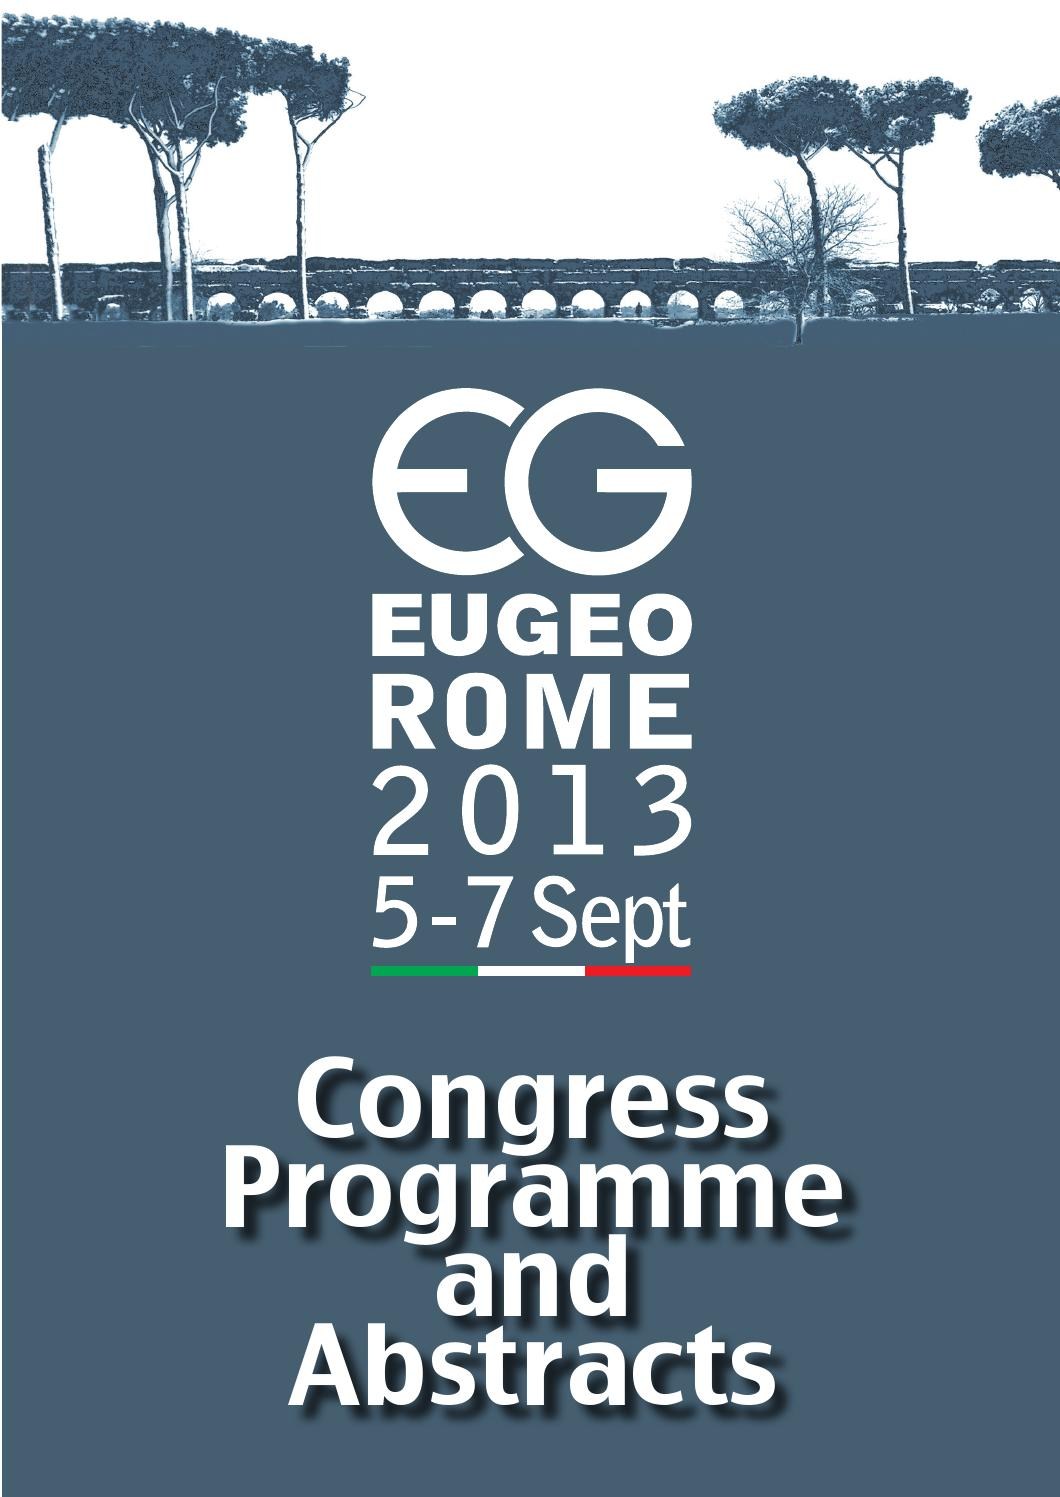 Idee Jardin Paysagiste Charmant Rome Eugeo 2013 Programme and Abstracts by Eugeo2013 issuu Of 69 Frais Idee Jardin Paysagiste